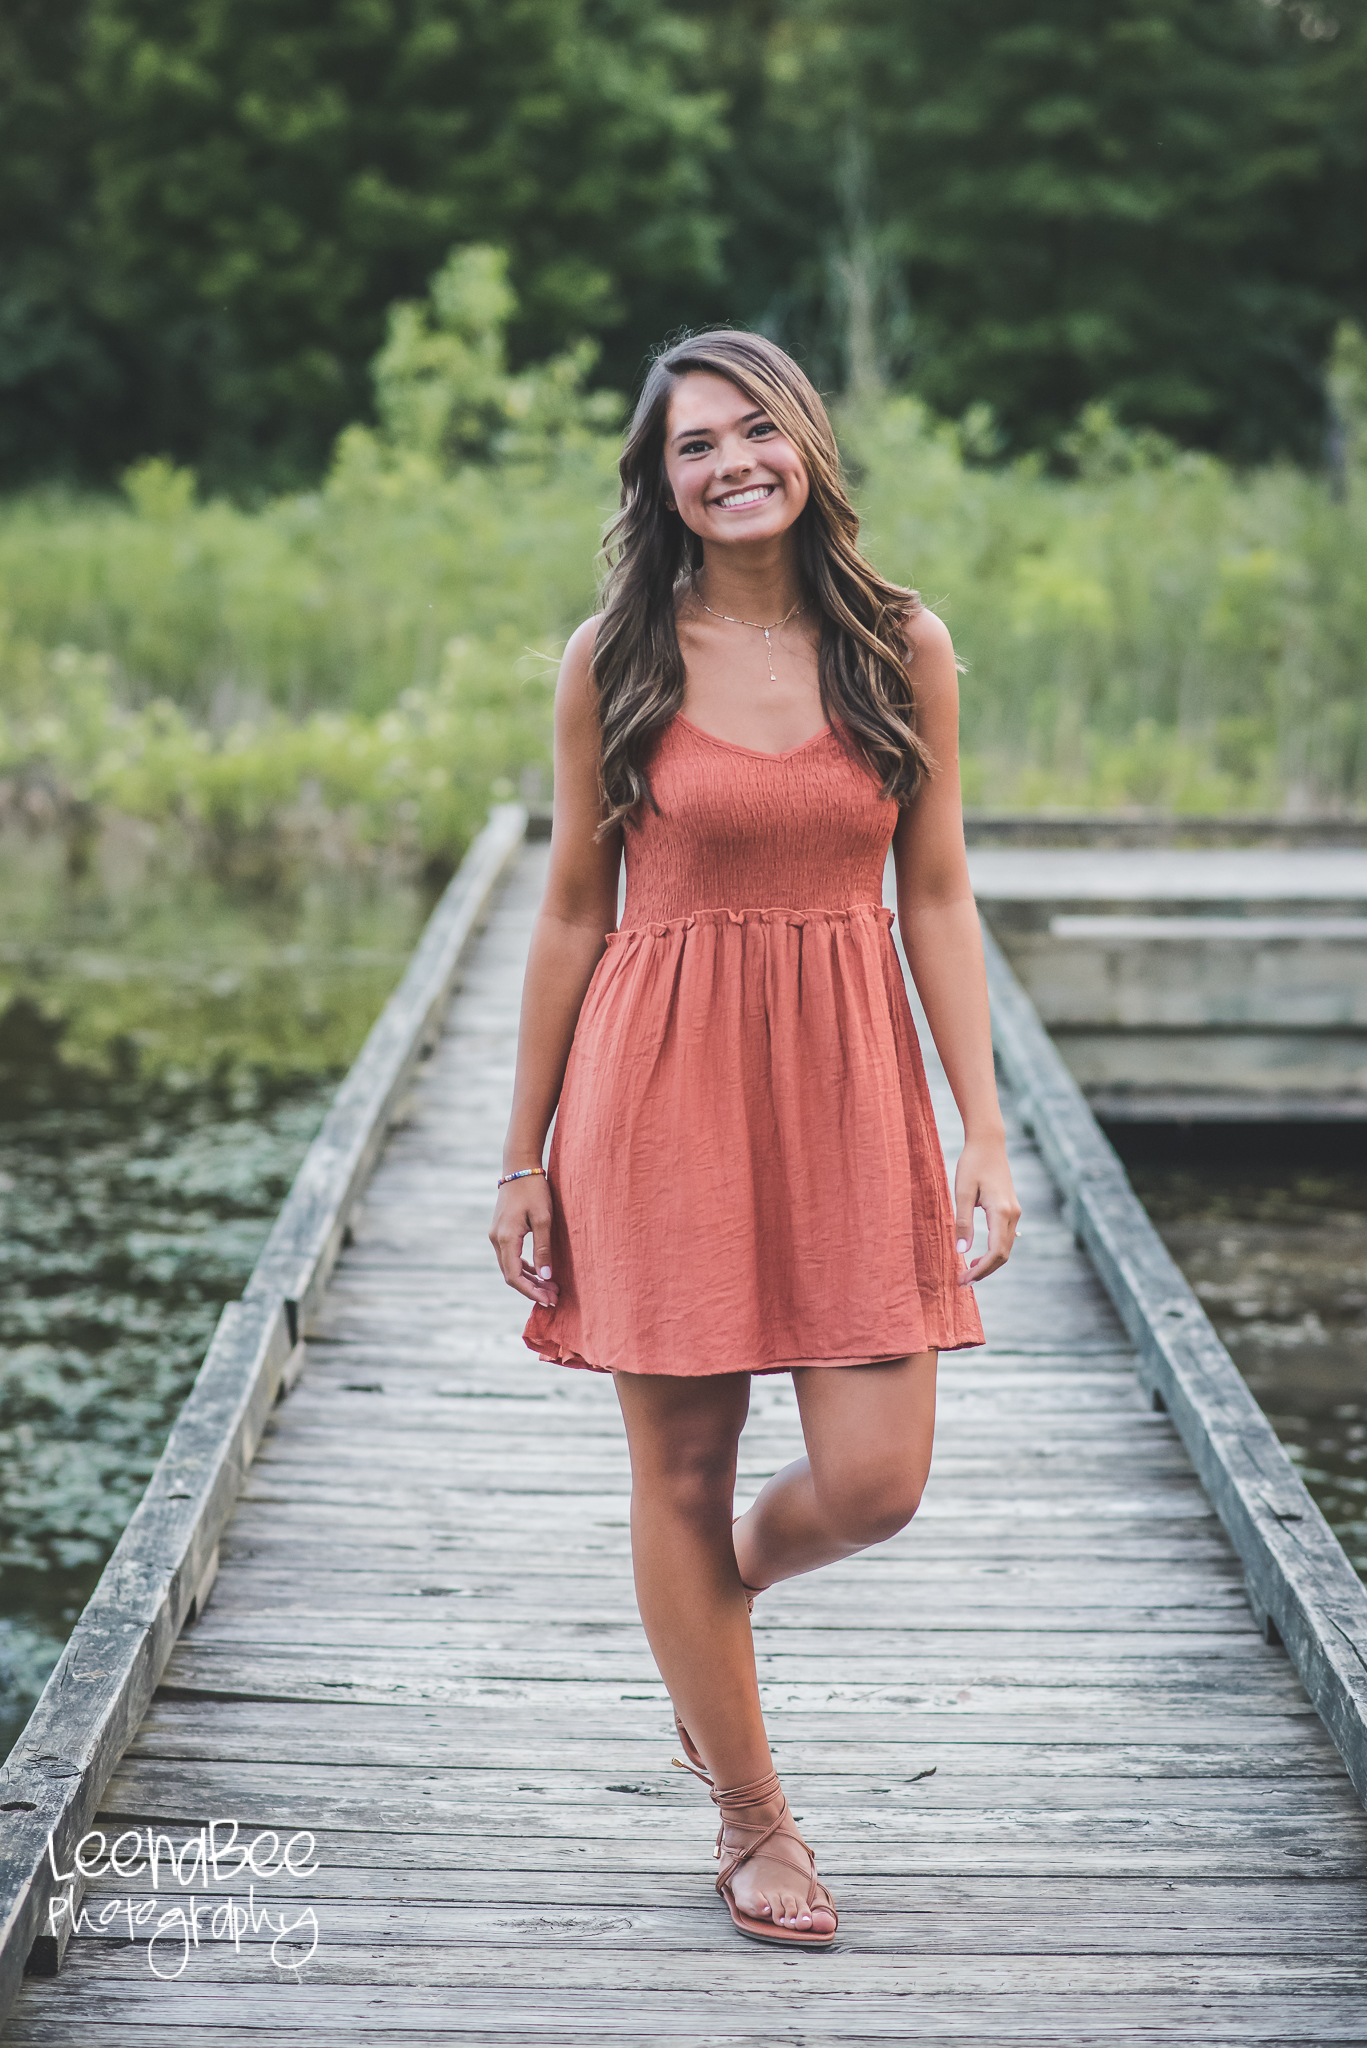 Dublin Olentangy Senior Photography-6